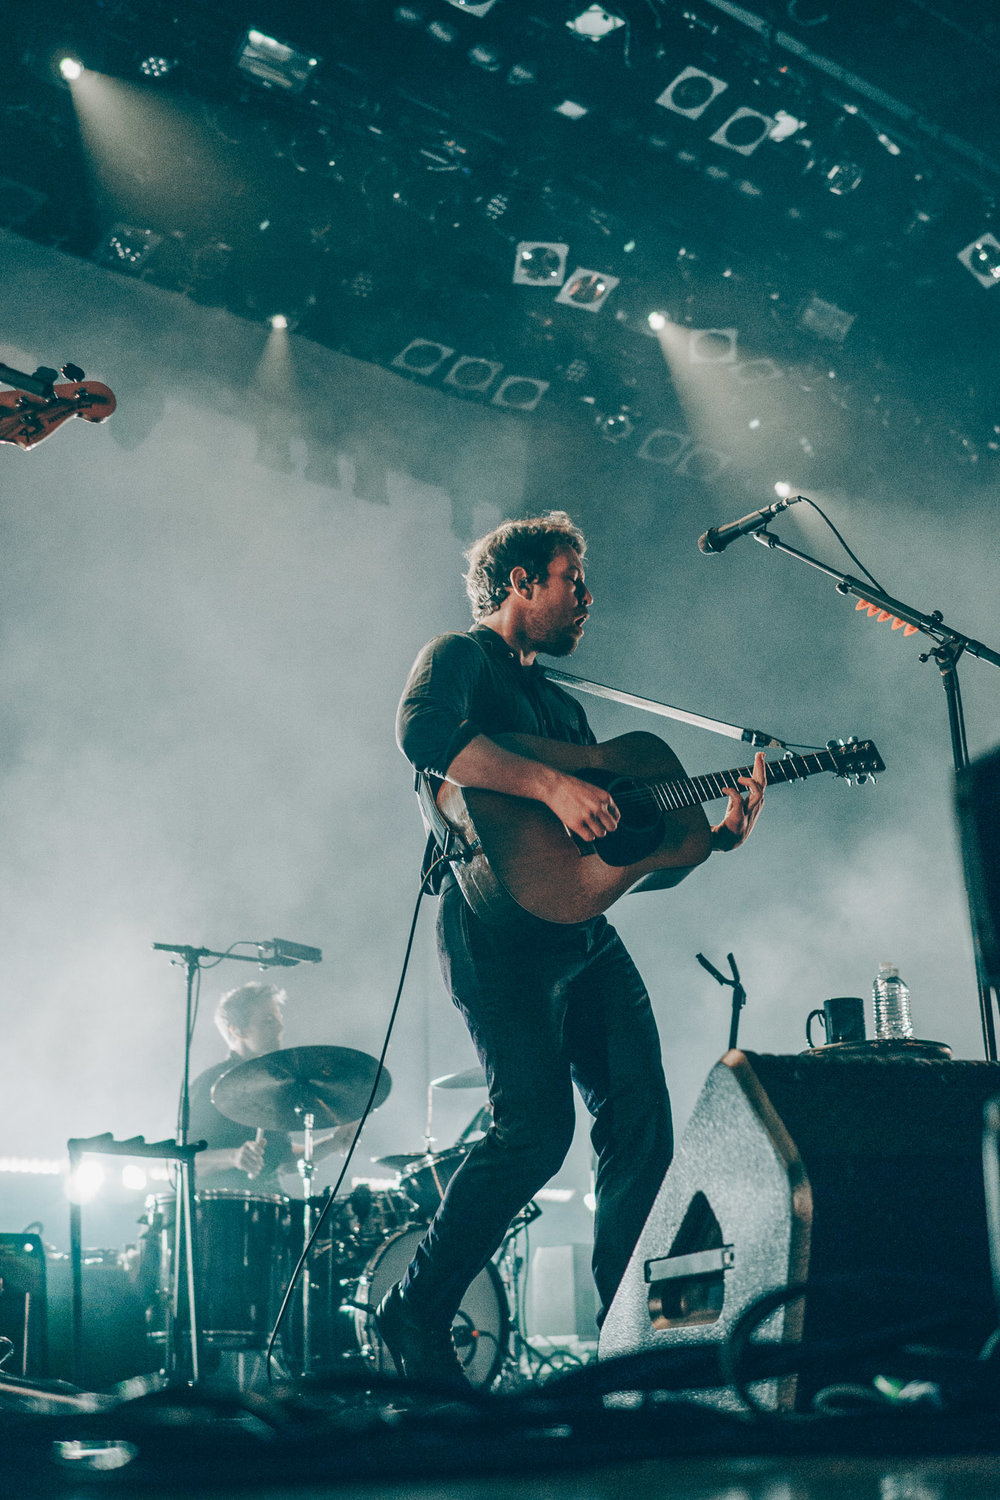 Fleet Foxes - Britton Strickland (6 of 16).jpg